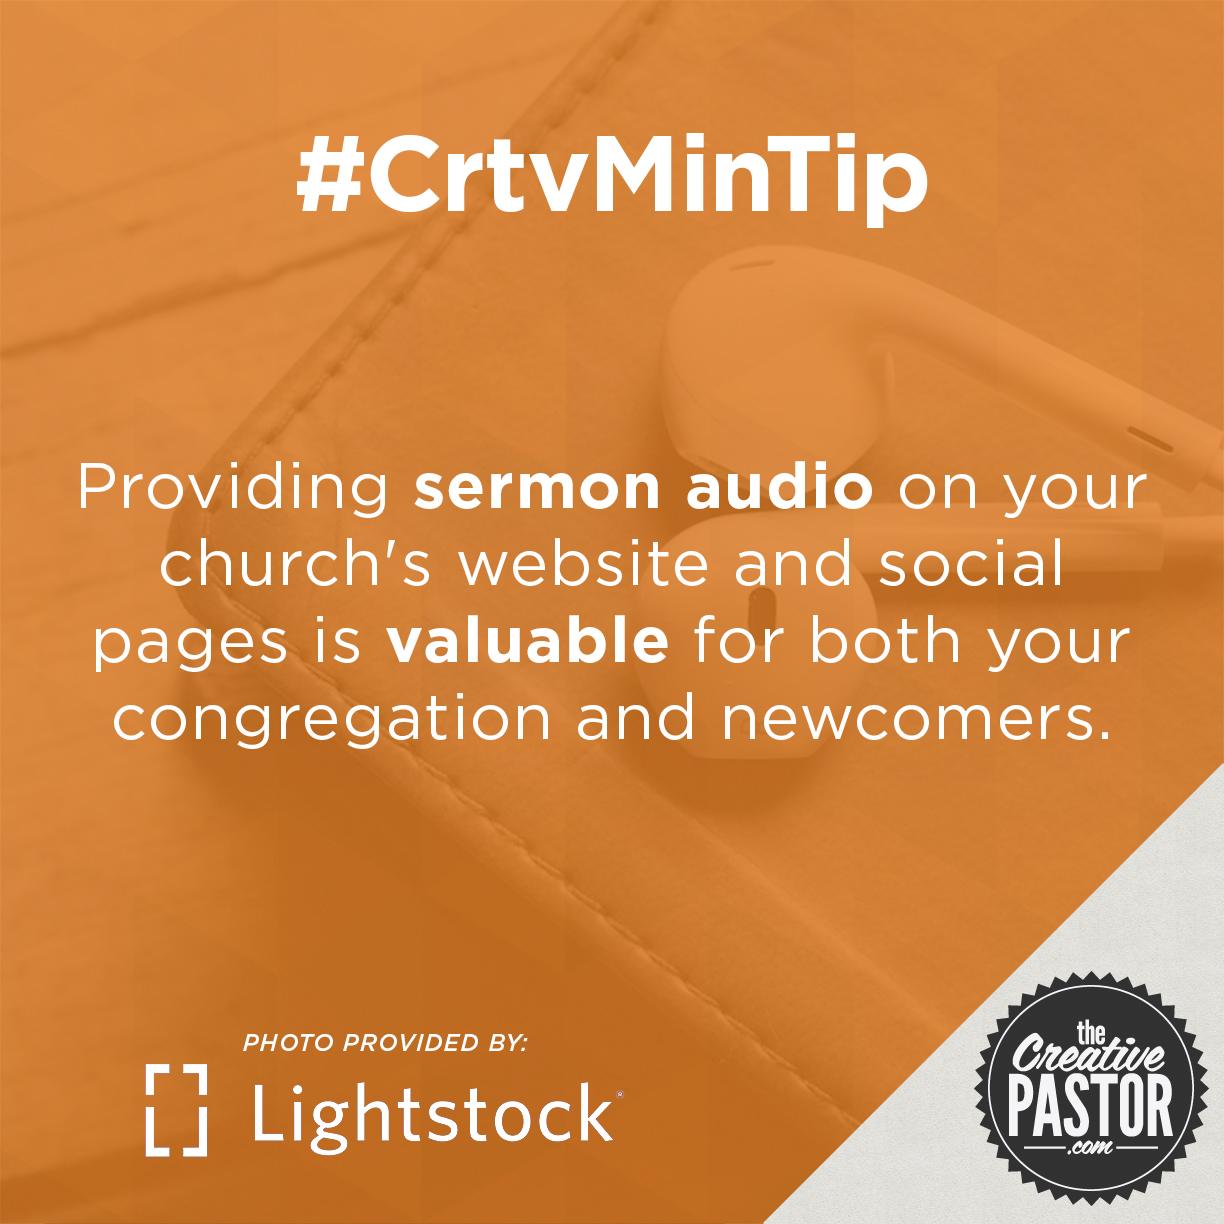 Providing sermon audio on your church's website and social pages is valuable for both your congregation and newcomers.